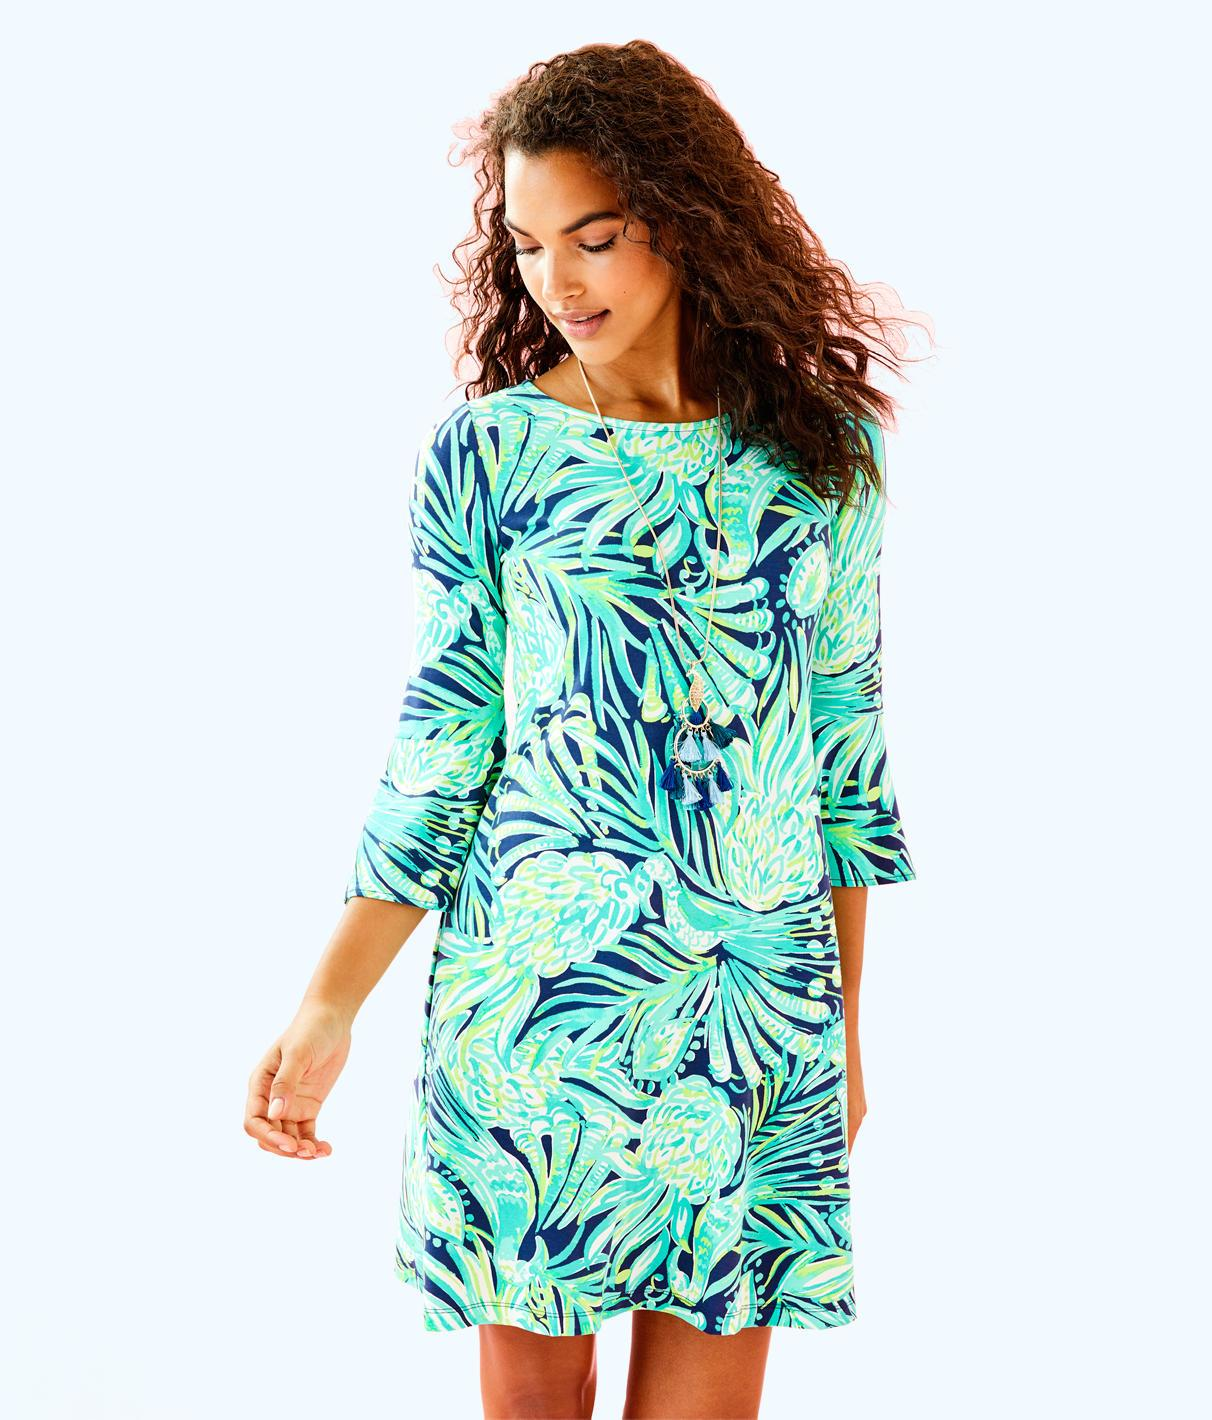 c576f7acd9e9ac Lilly Pulitzer Ophelia Swing Dress In Bright Navy Party Like A Flock Star